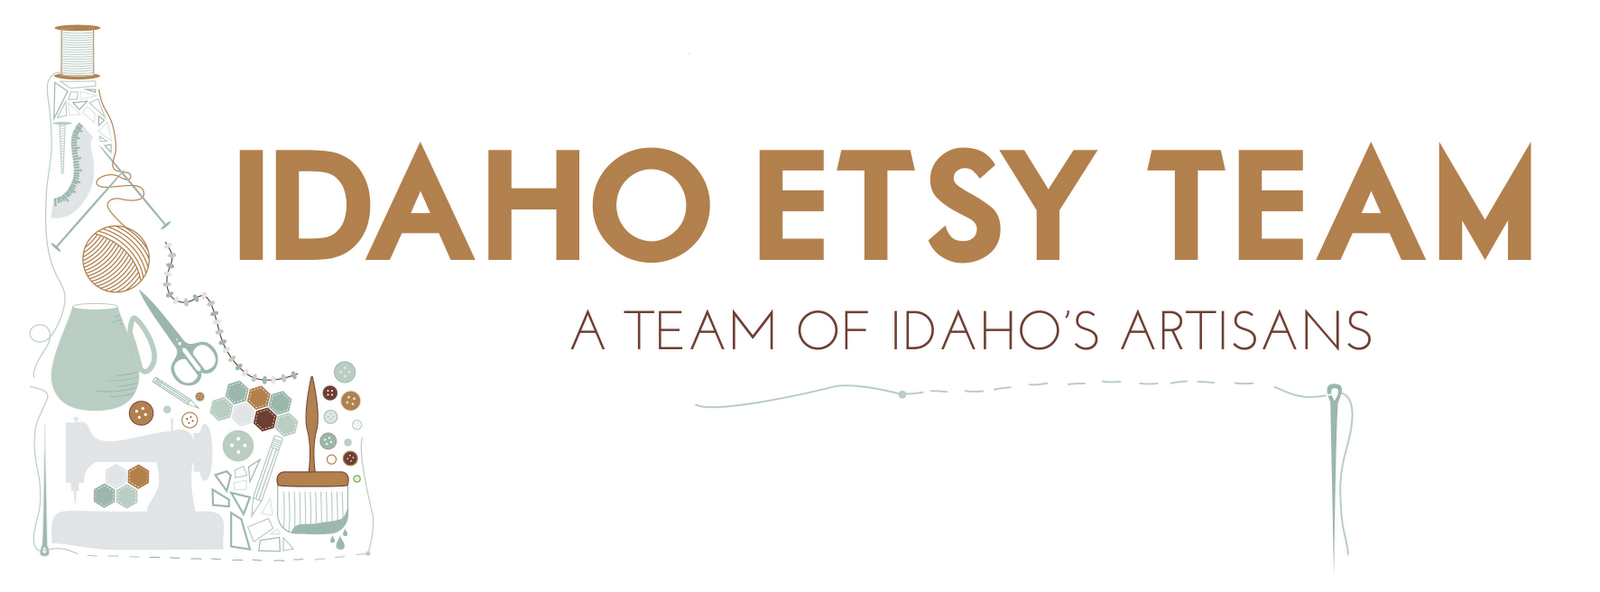 Idaho Etsy Team